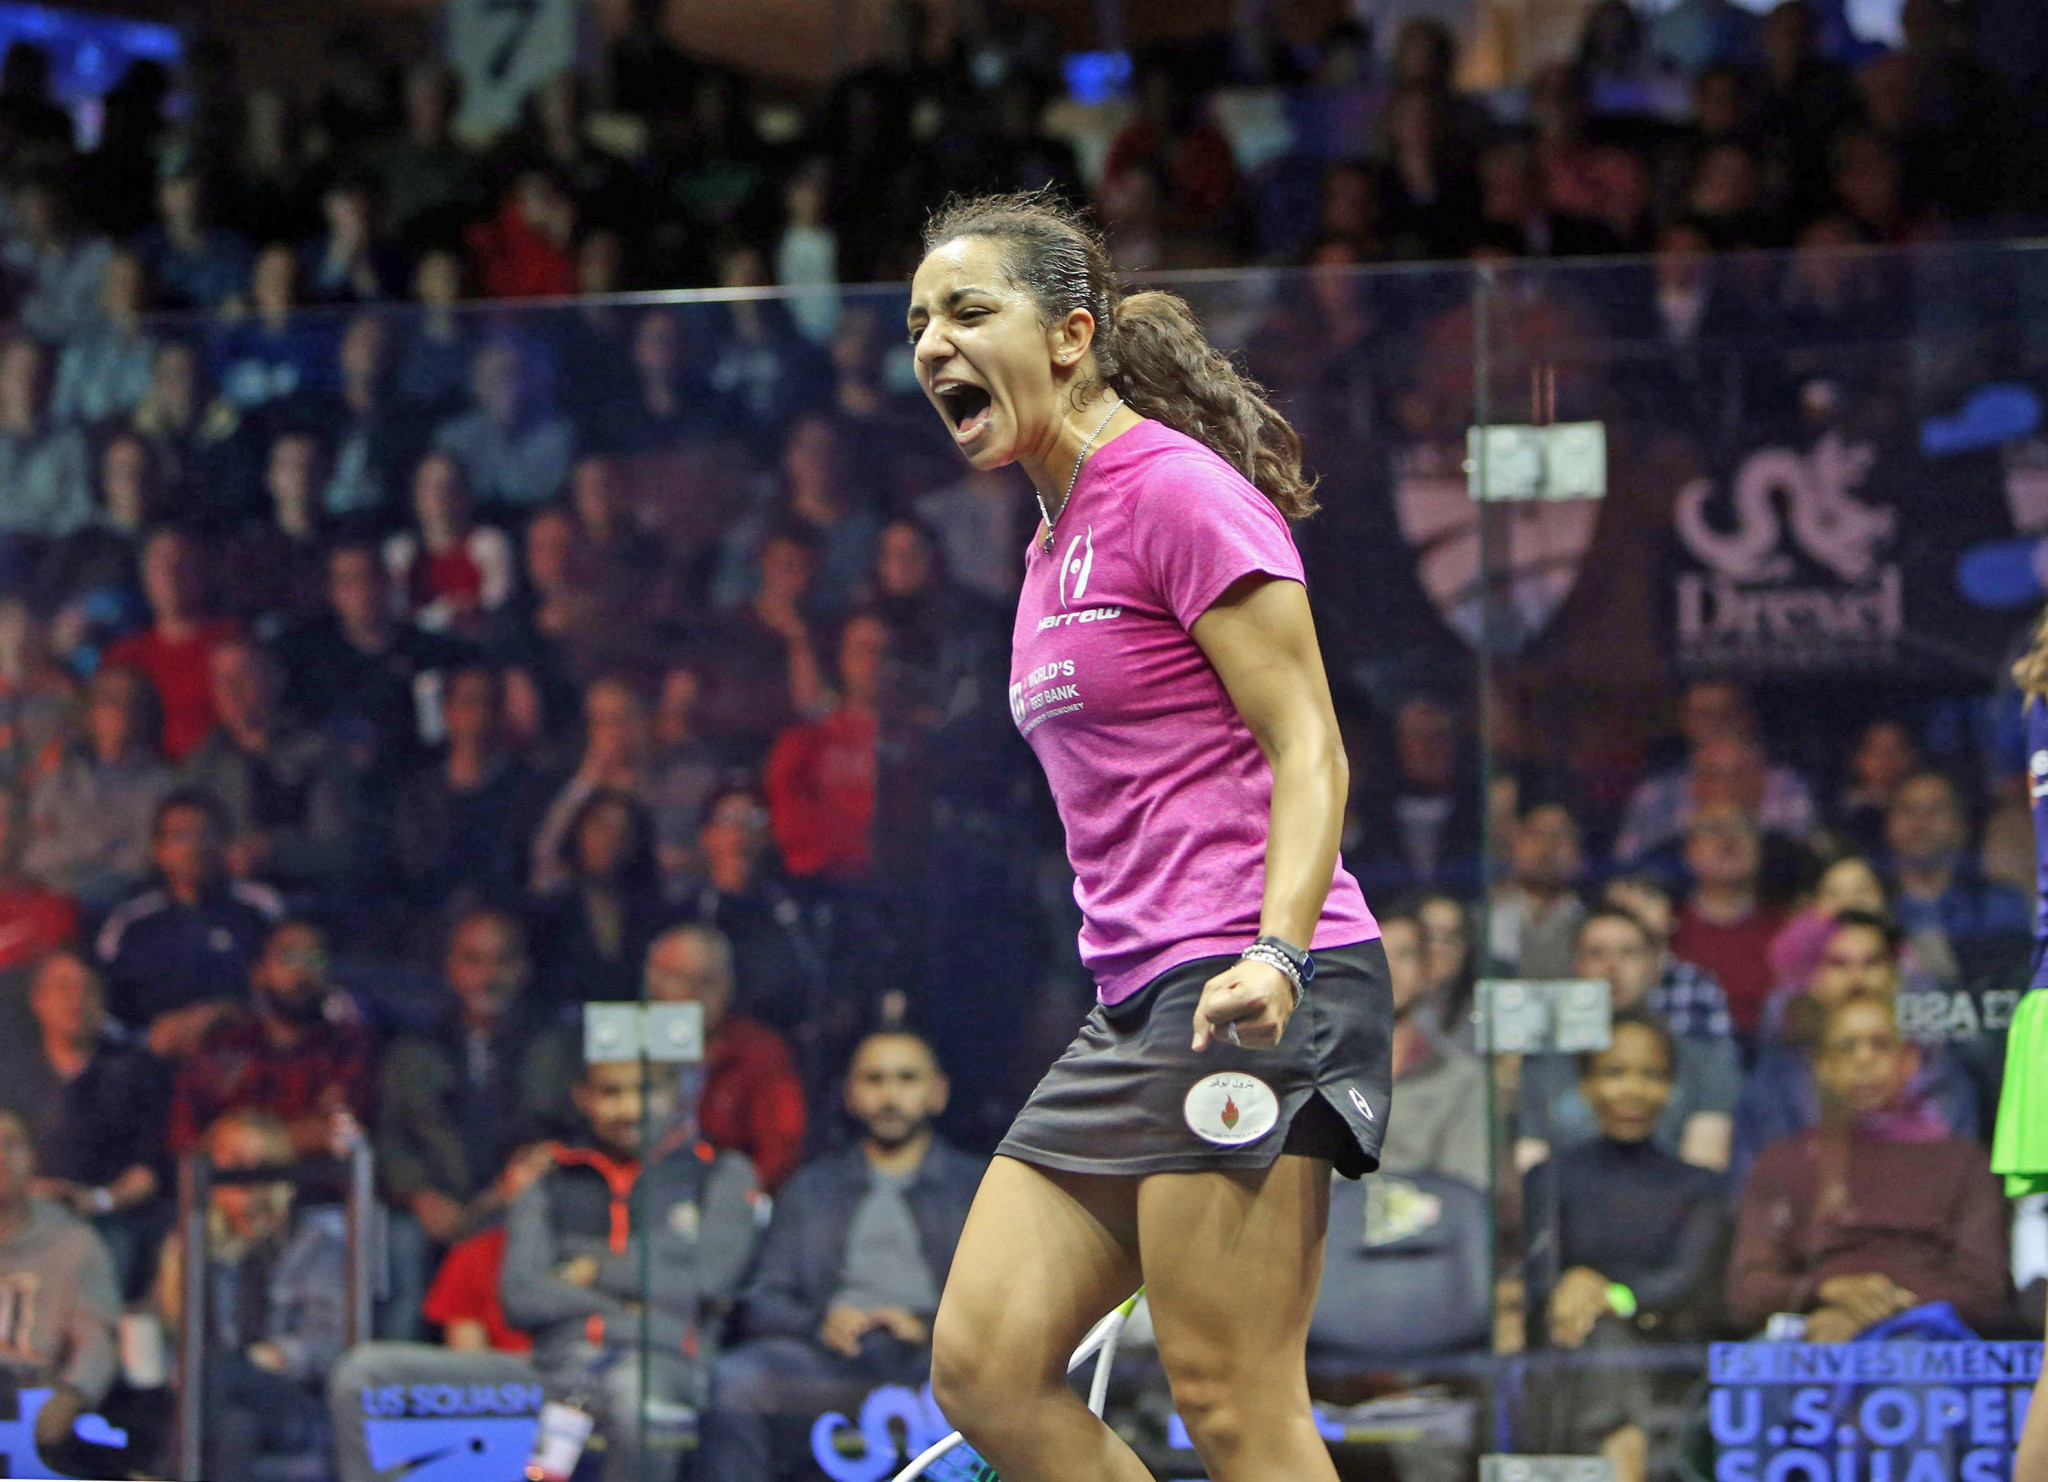 Egypt's Raneem El Welily will look to maintain her strong start to the season ©PSA